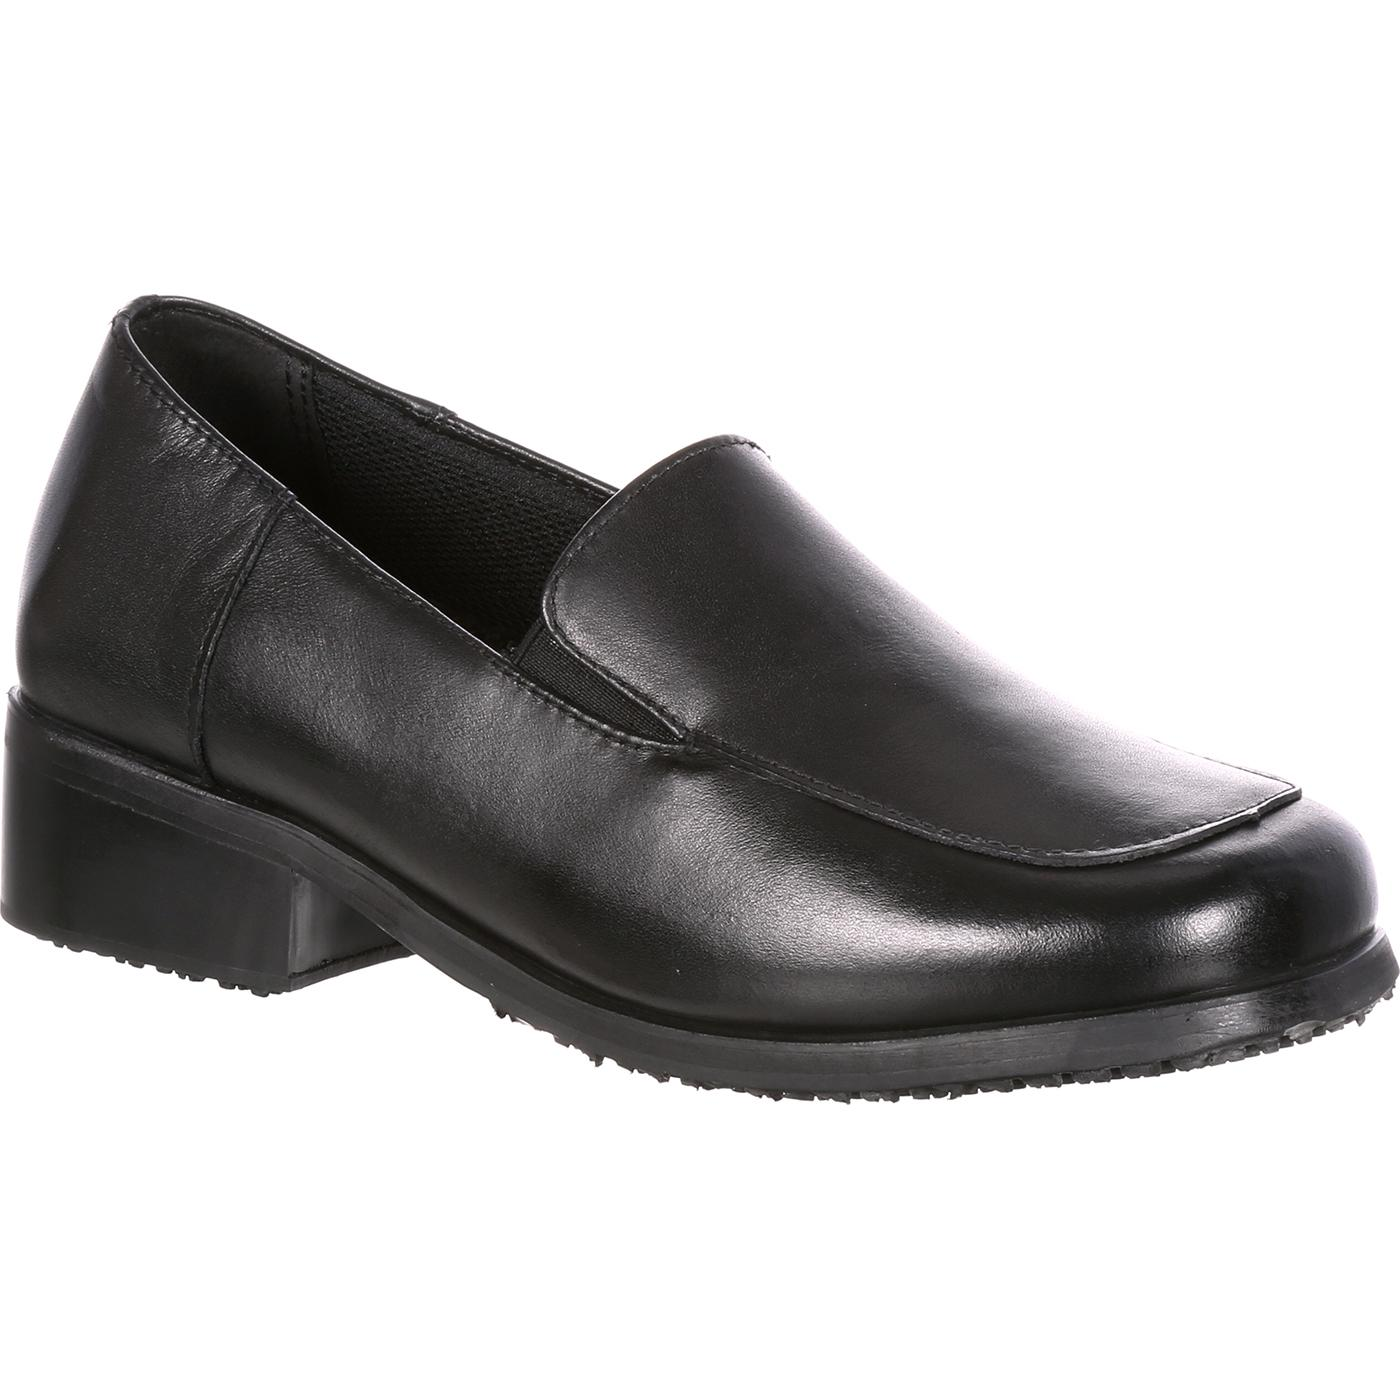 Timberland Slip Resistant Shoes Womens